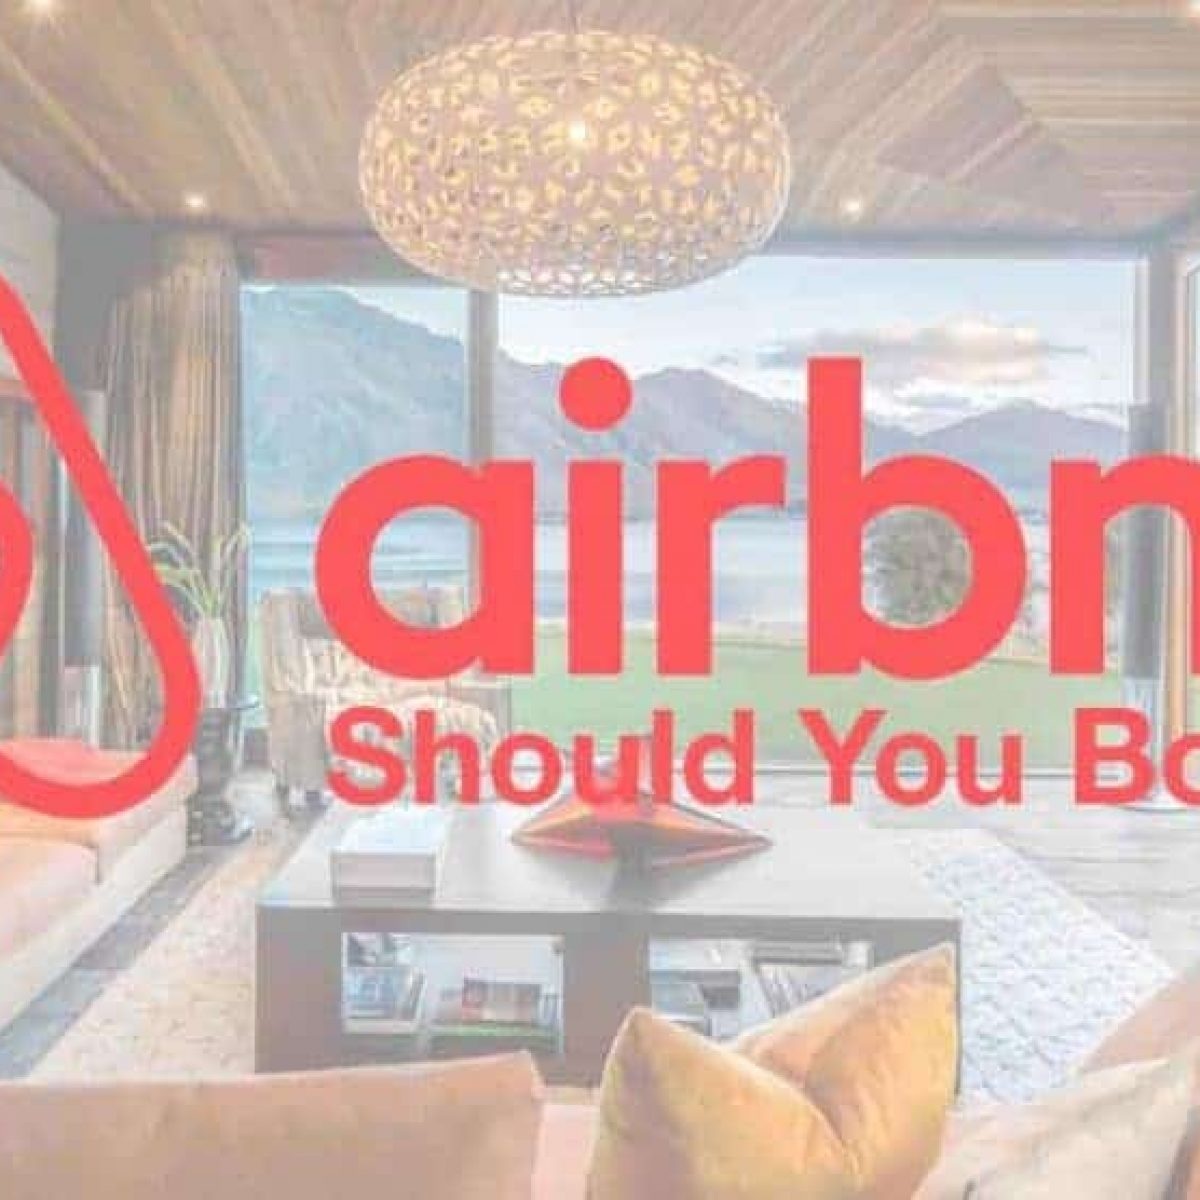 Airbnb: Should you Book Airbnb? Airbnb Coupon and Airbnb Review, My Experience